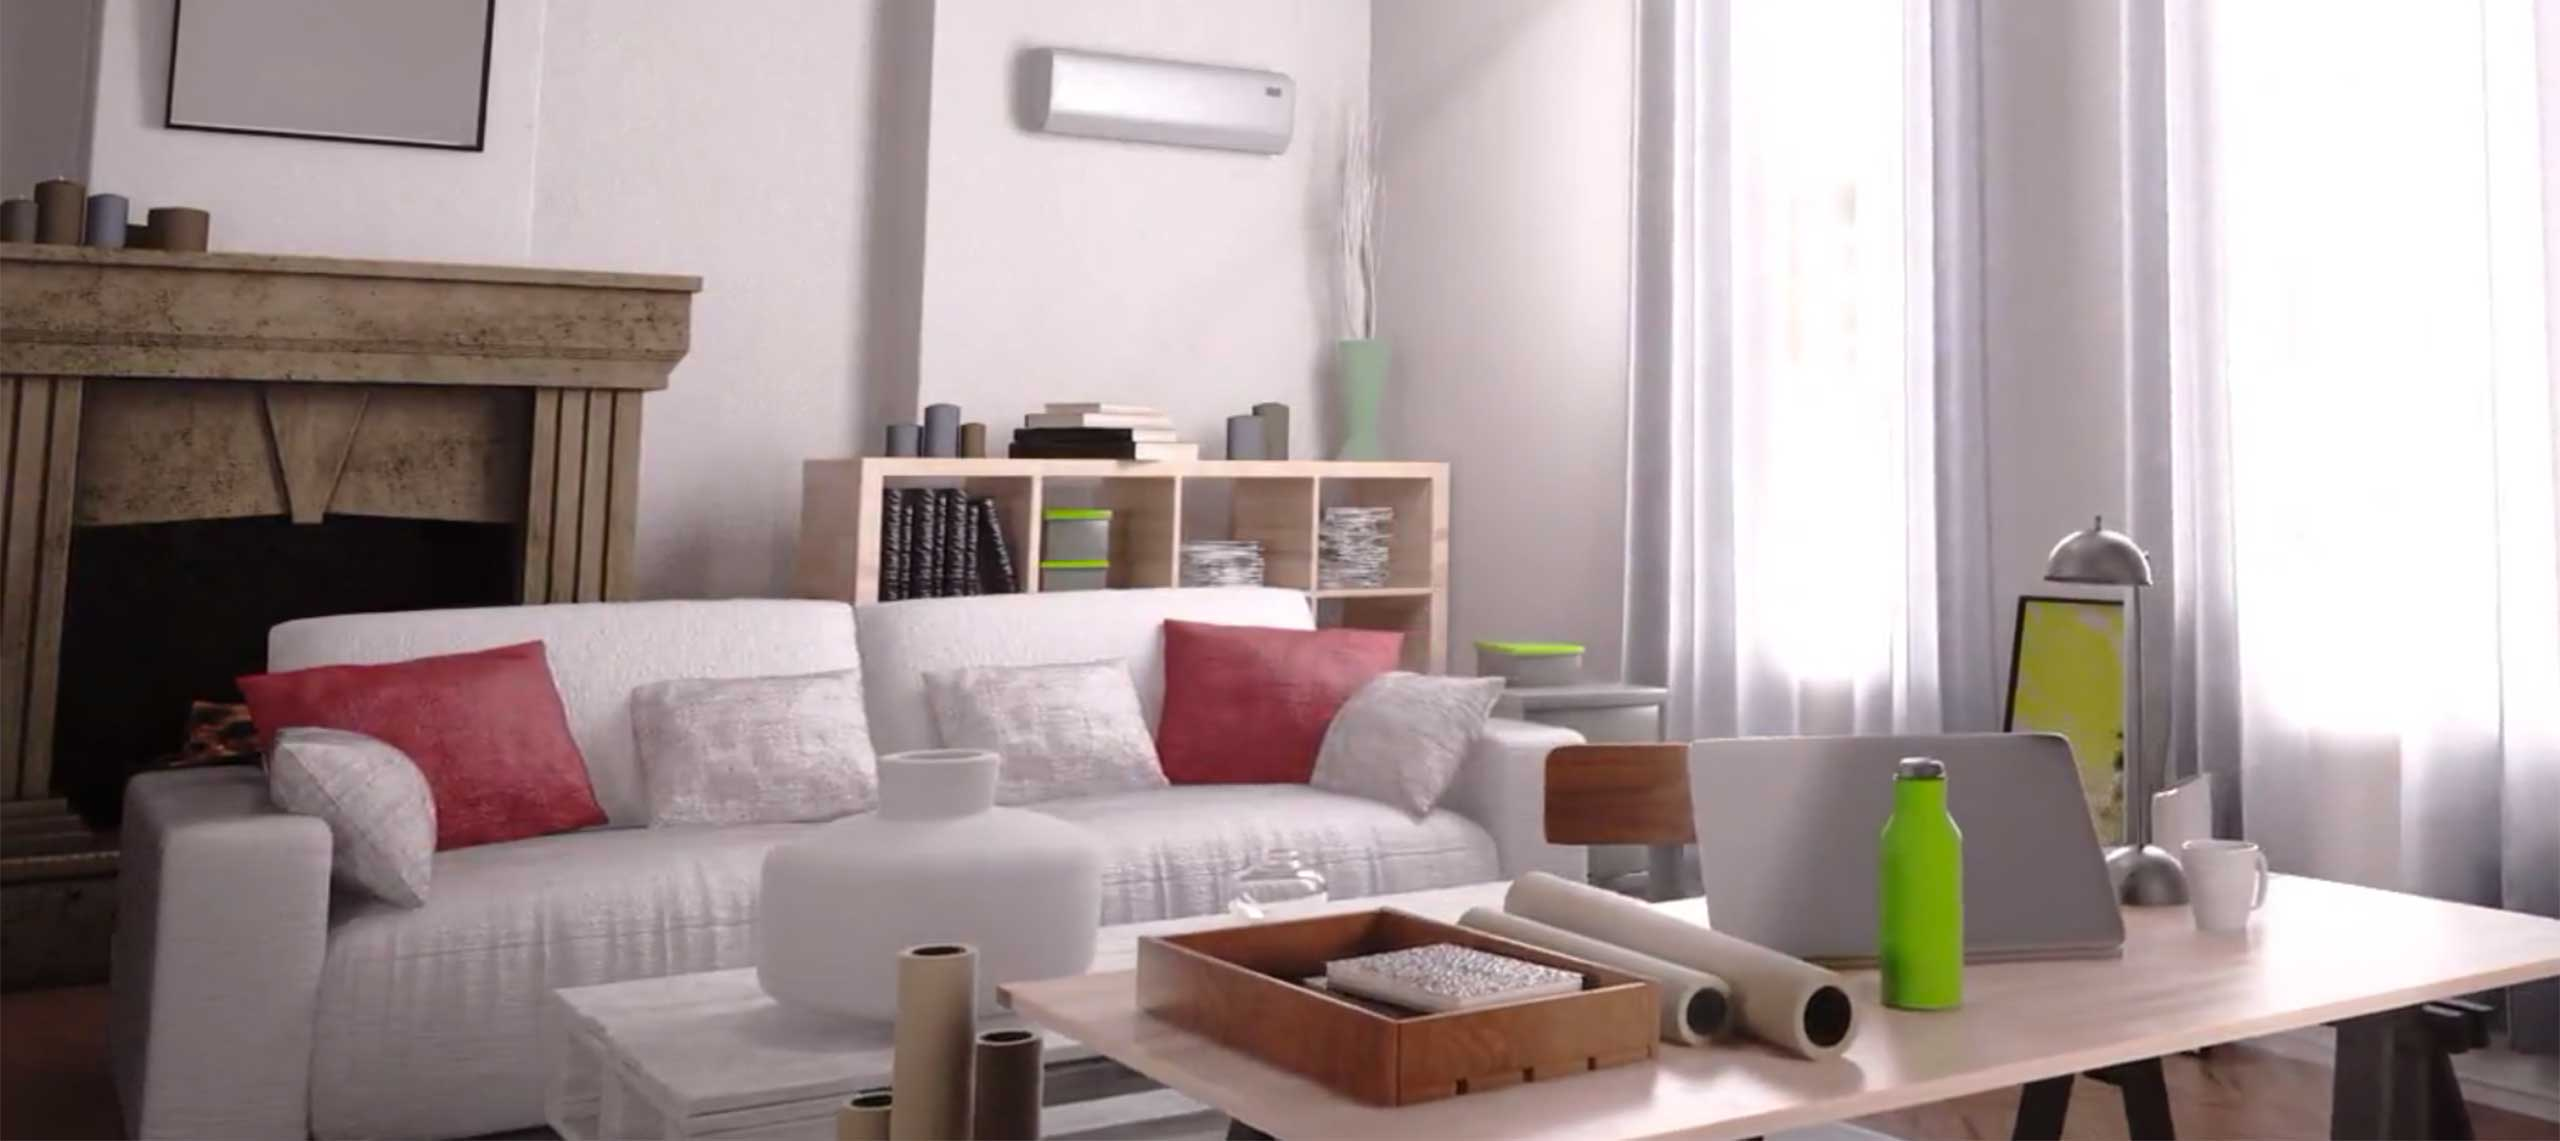 A ductless mini split AC can be added to any home without expensive ductwork!